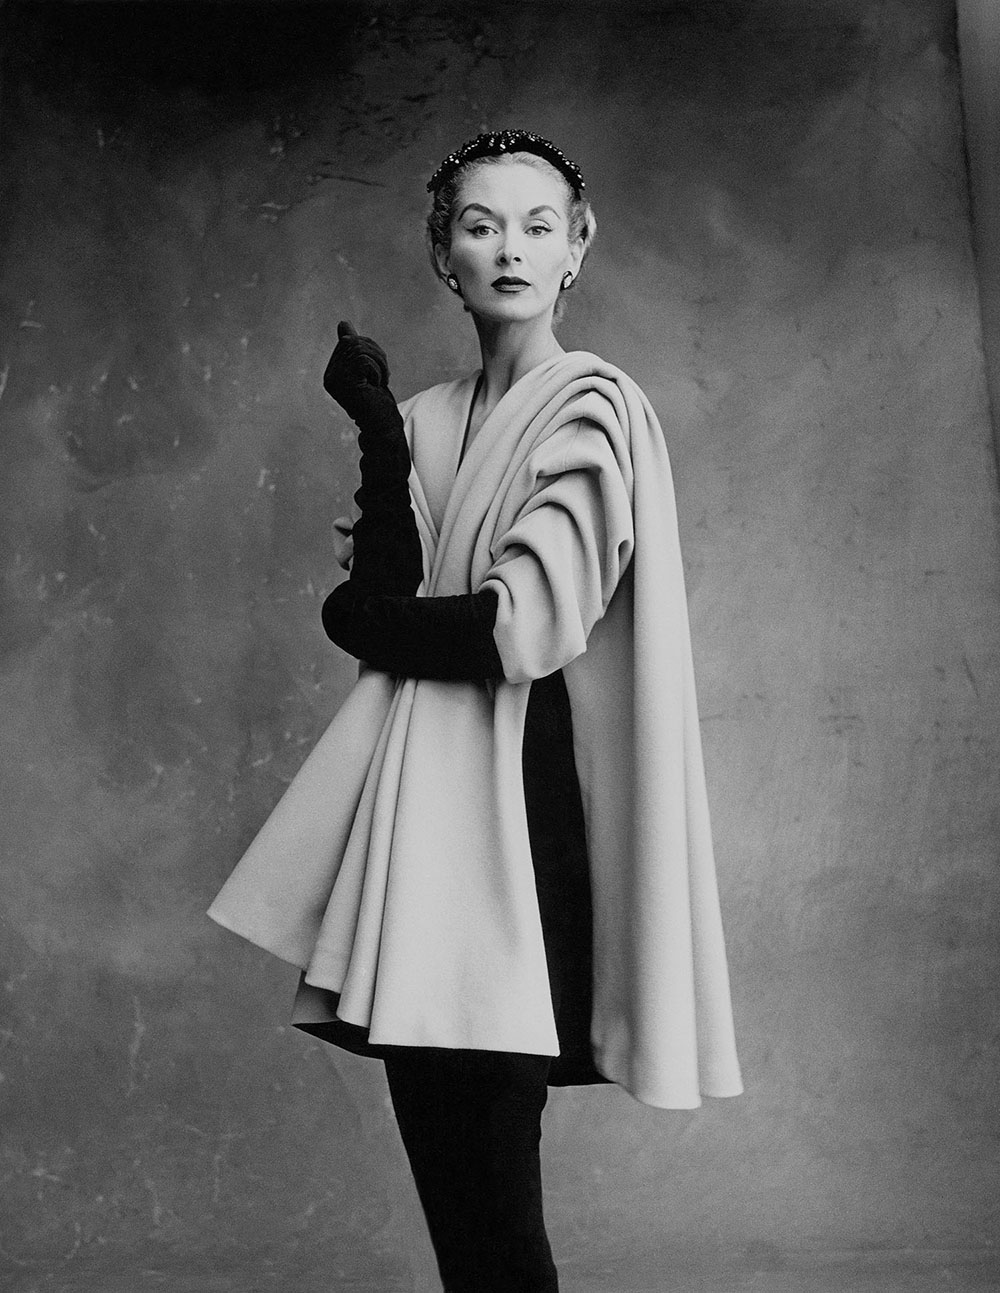 Lisa Fonssagrives-Penn wearing coat by Cristóbal Balenciaga, Paris, 1950. Photograph by Irving Penn © Condé Nast, Irving Penn Foundation